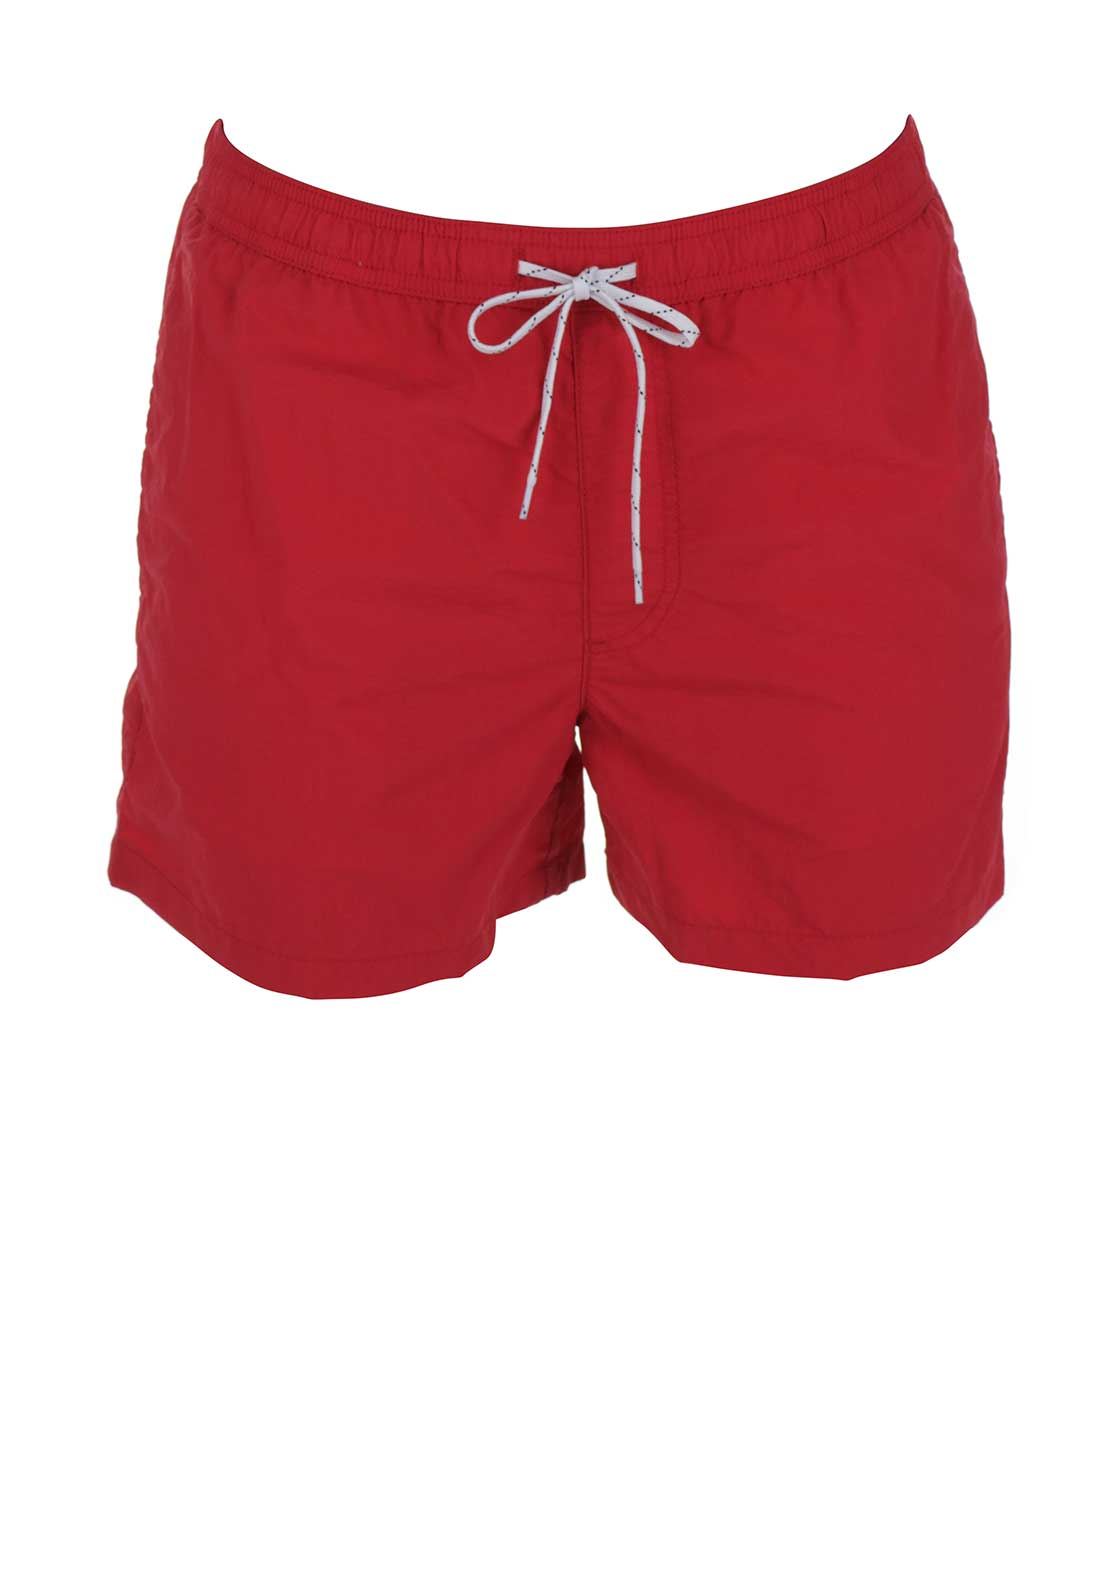 Jack & Jones Malibu Swim Shorts, Chinese Red